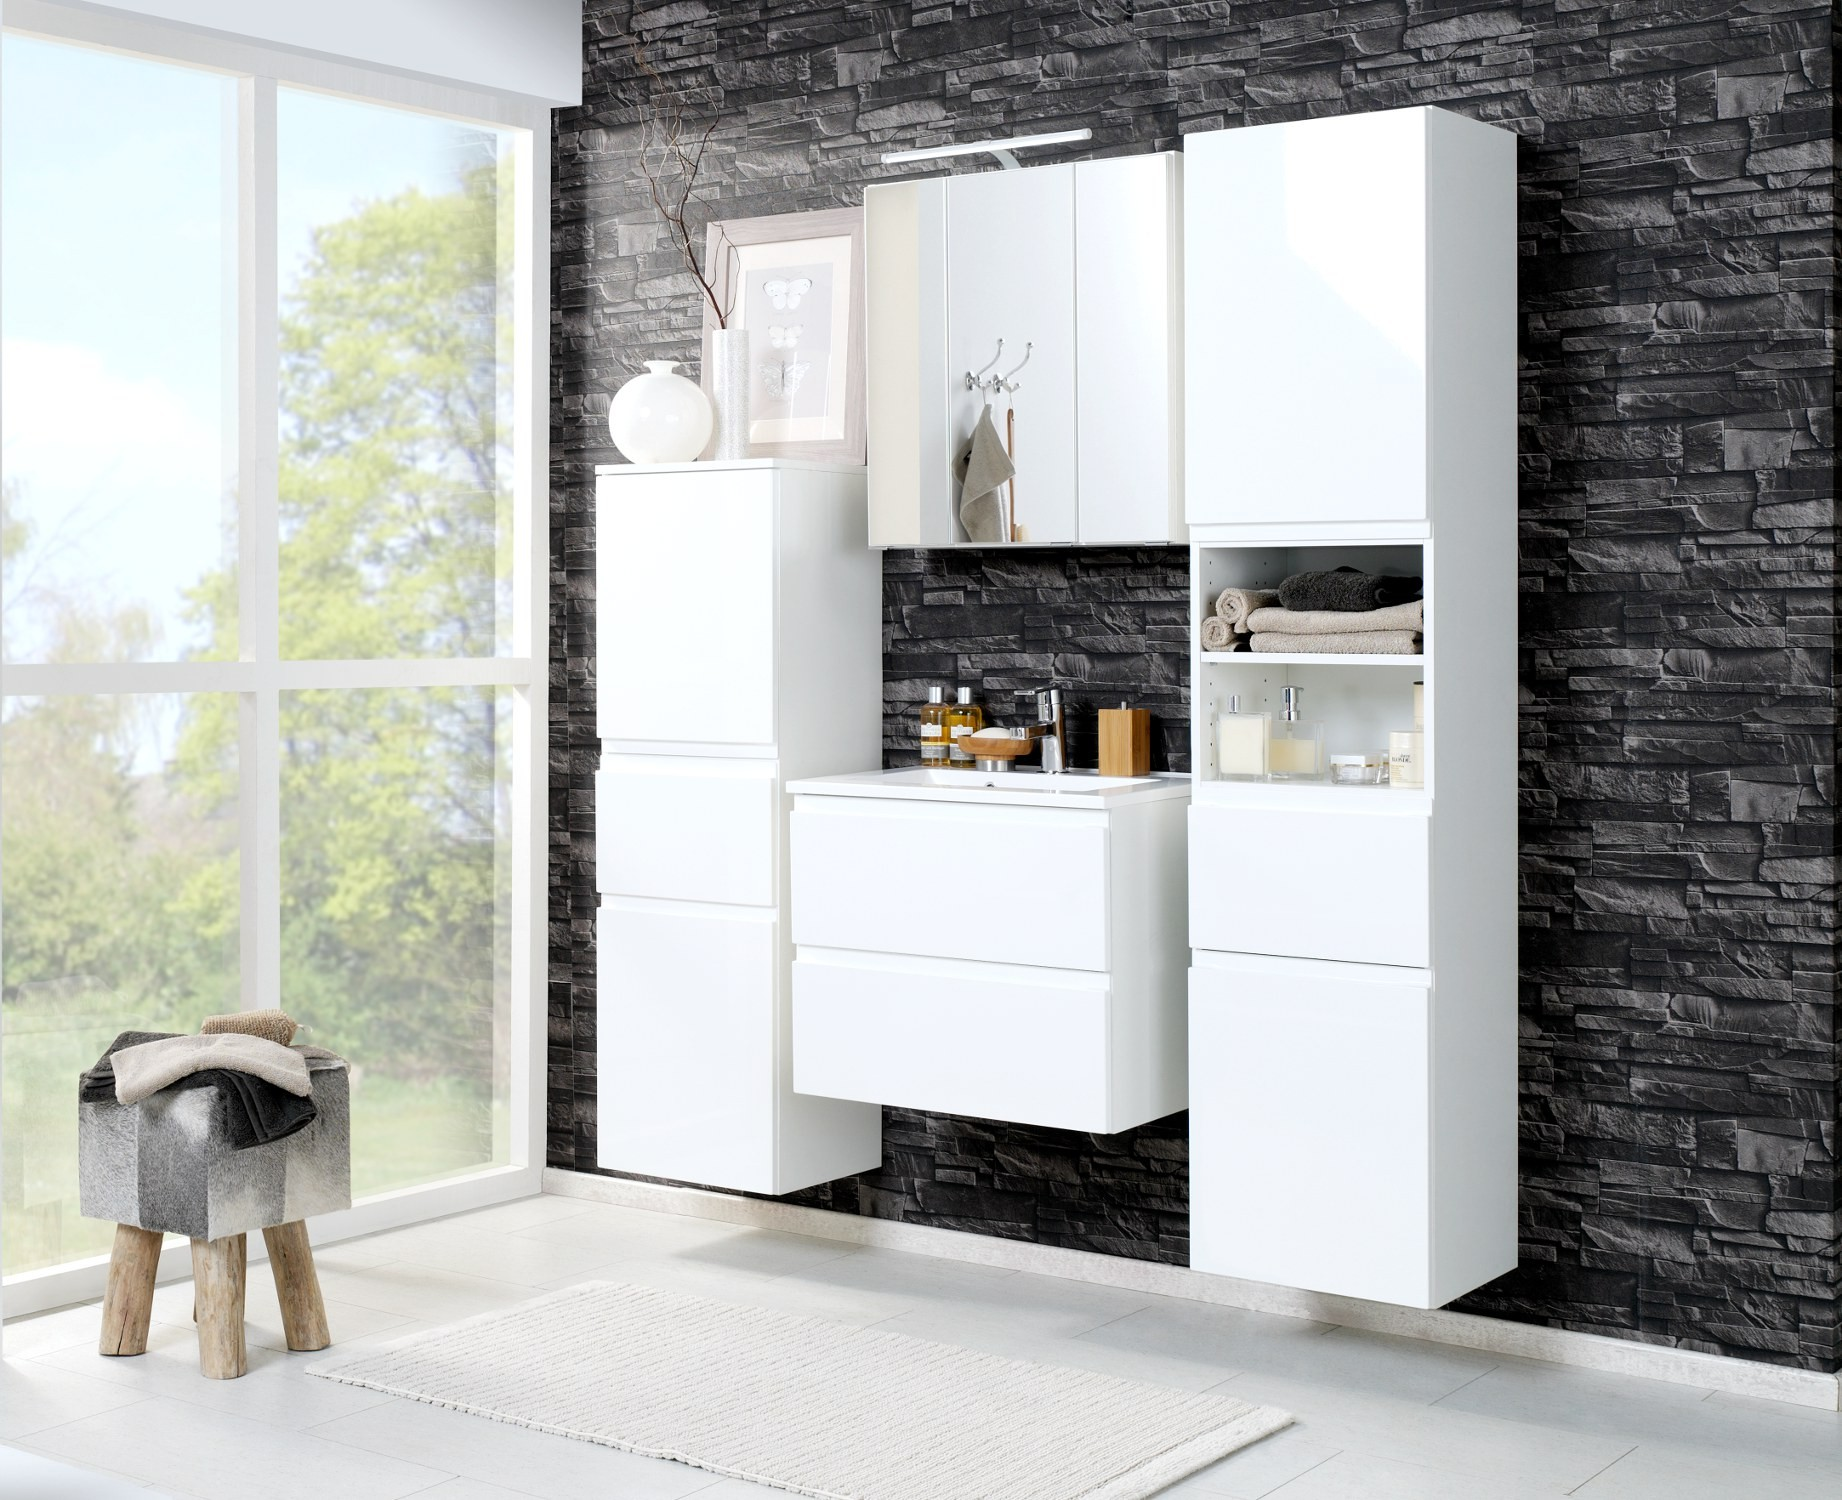 badm bel set cardiff mit waschtisch 4 teilig 100 cm breit hochglanz wei bad badm belsets. Black Bedroom Furniture Sets. Home Design Ideas